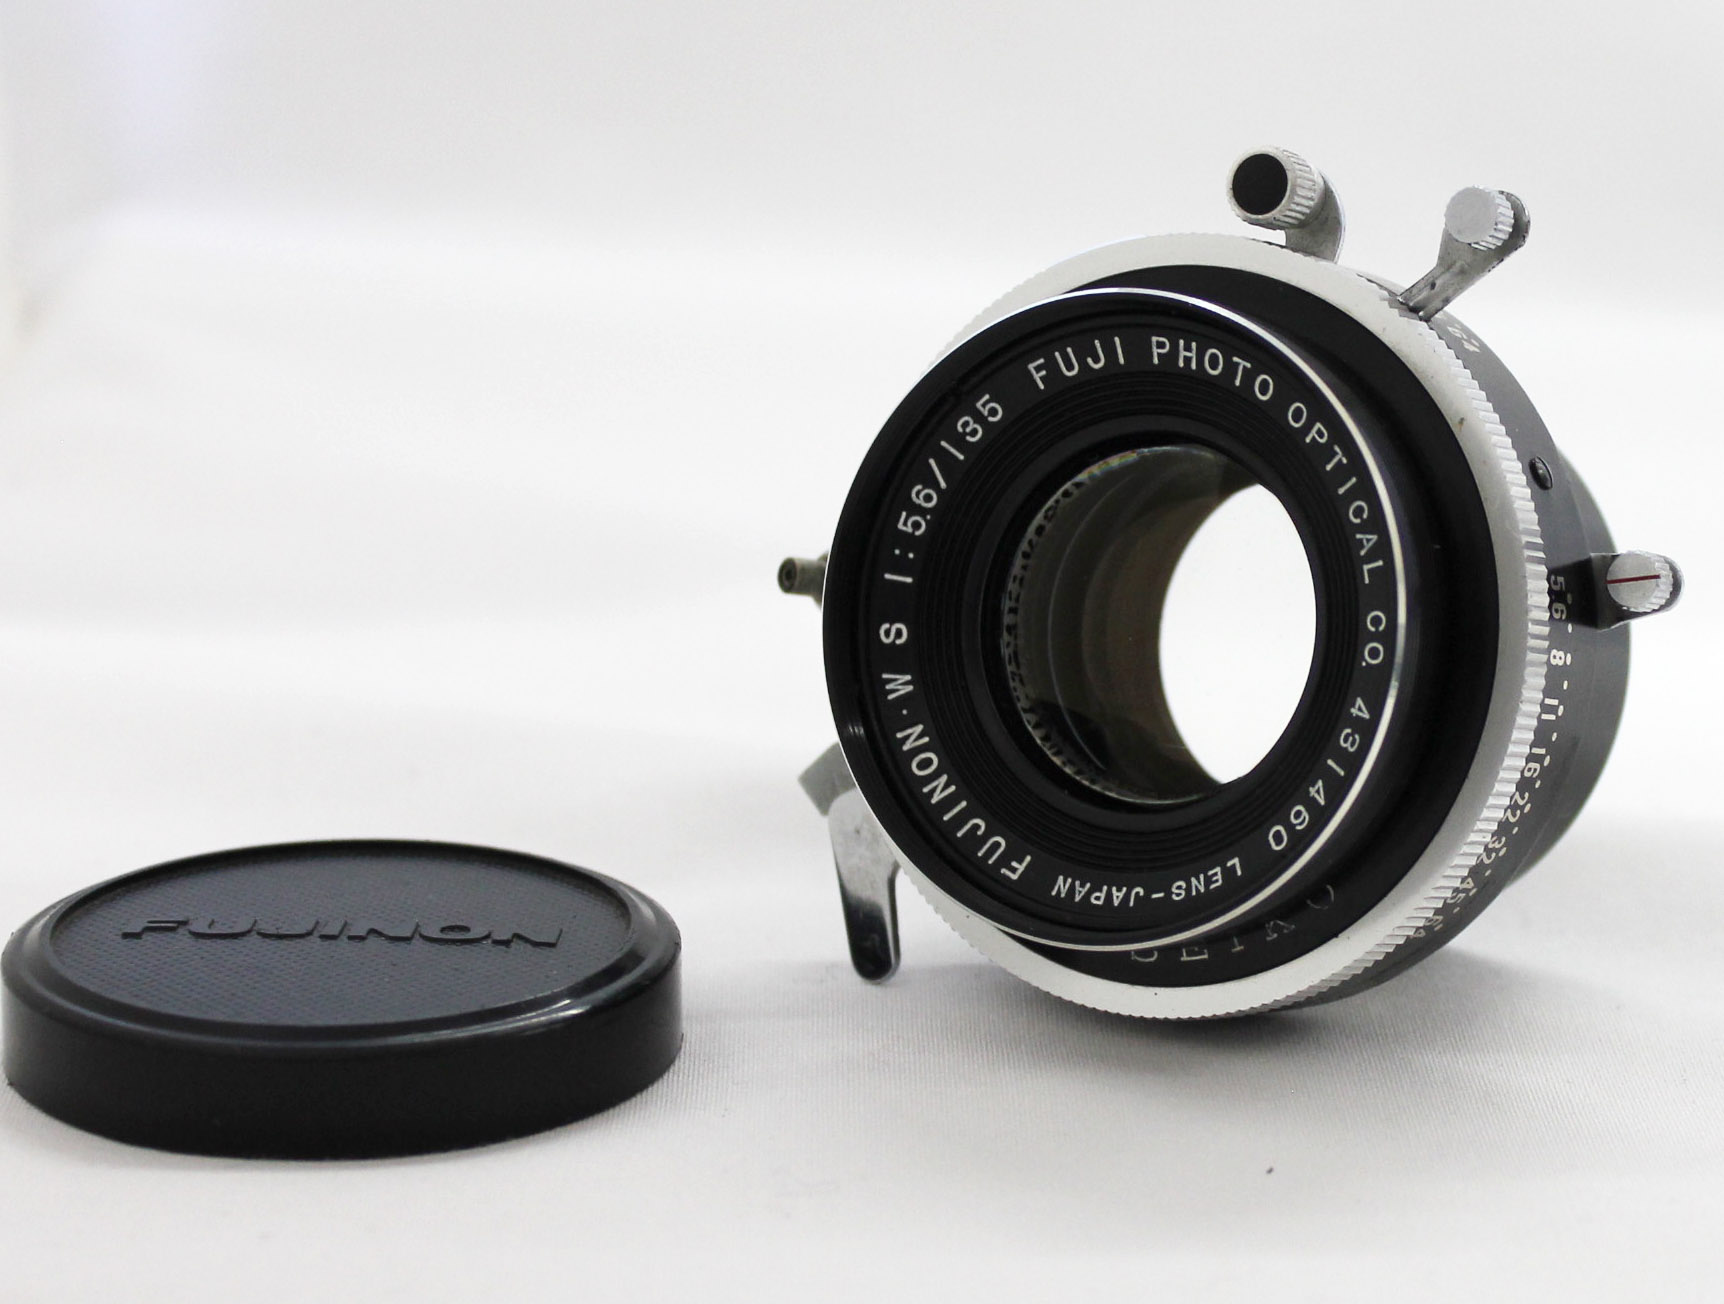 Japan Used Camera Shop | Fuji Fujinon W S 135mm F/5.6 4x5 Large Format Lens with Seiko Shutter from Japan